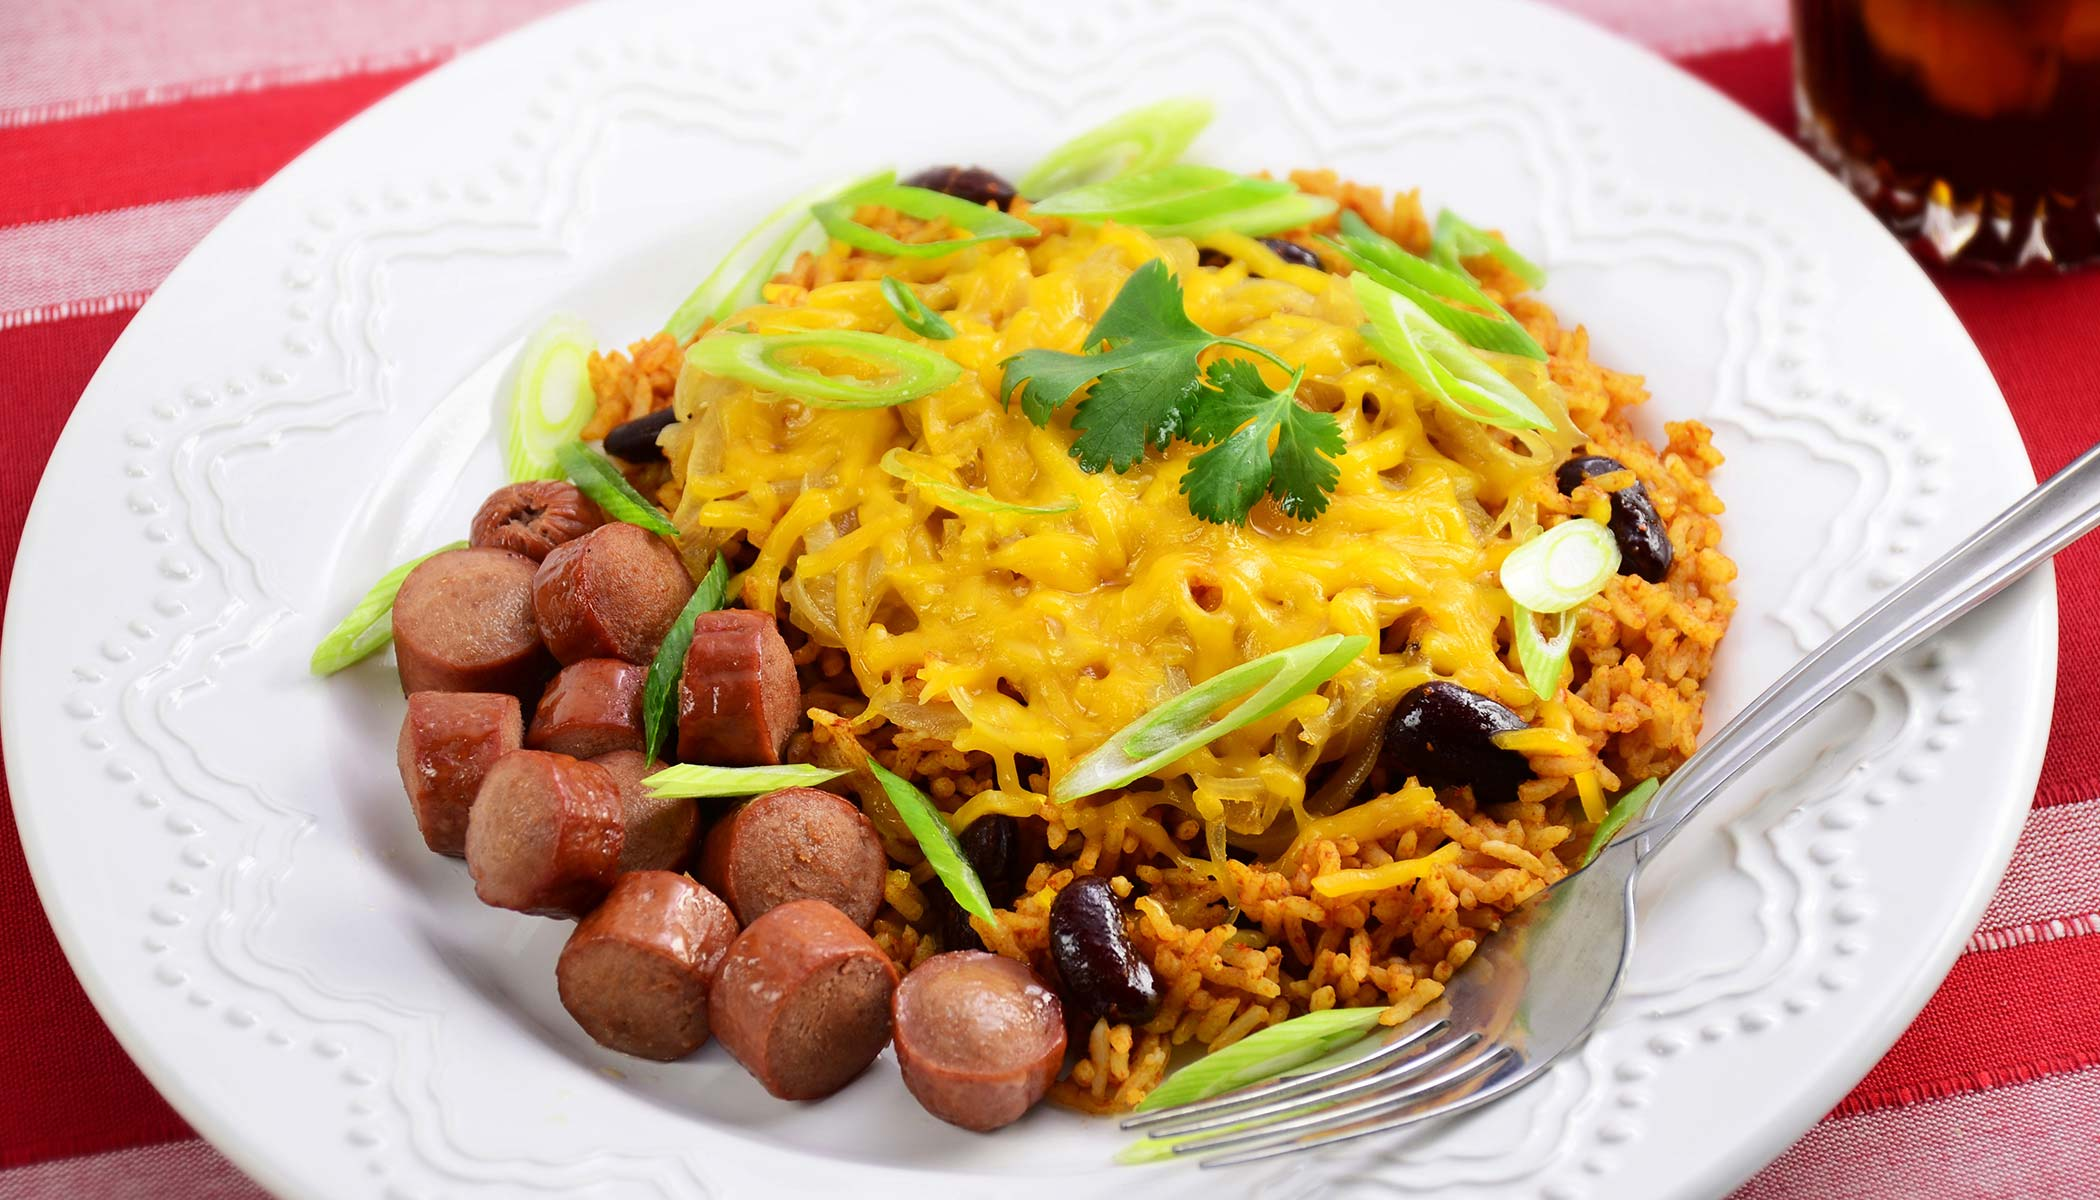 Chili Cheese Rice and Hot Dogs